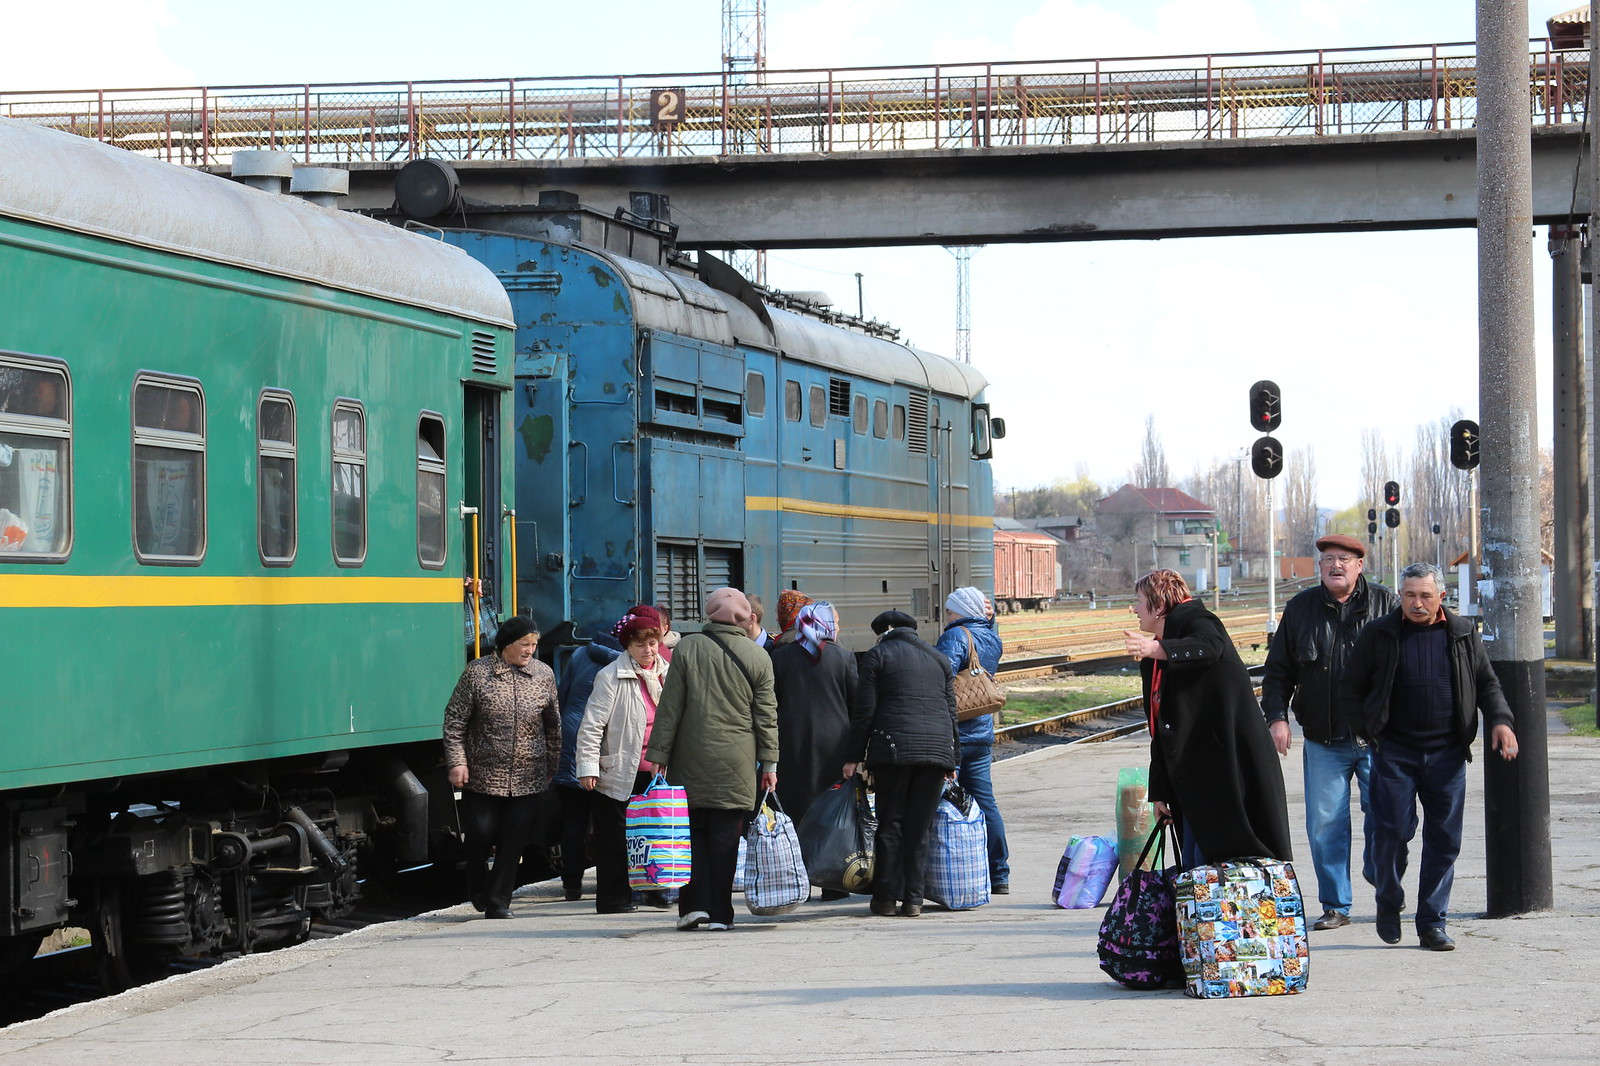 CFM 3TE10M-1249b at Ocnita with Moscow - Chisinau 341 2015-03-31 (2)